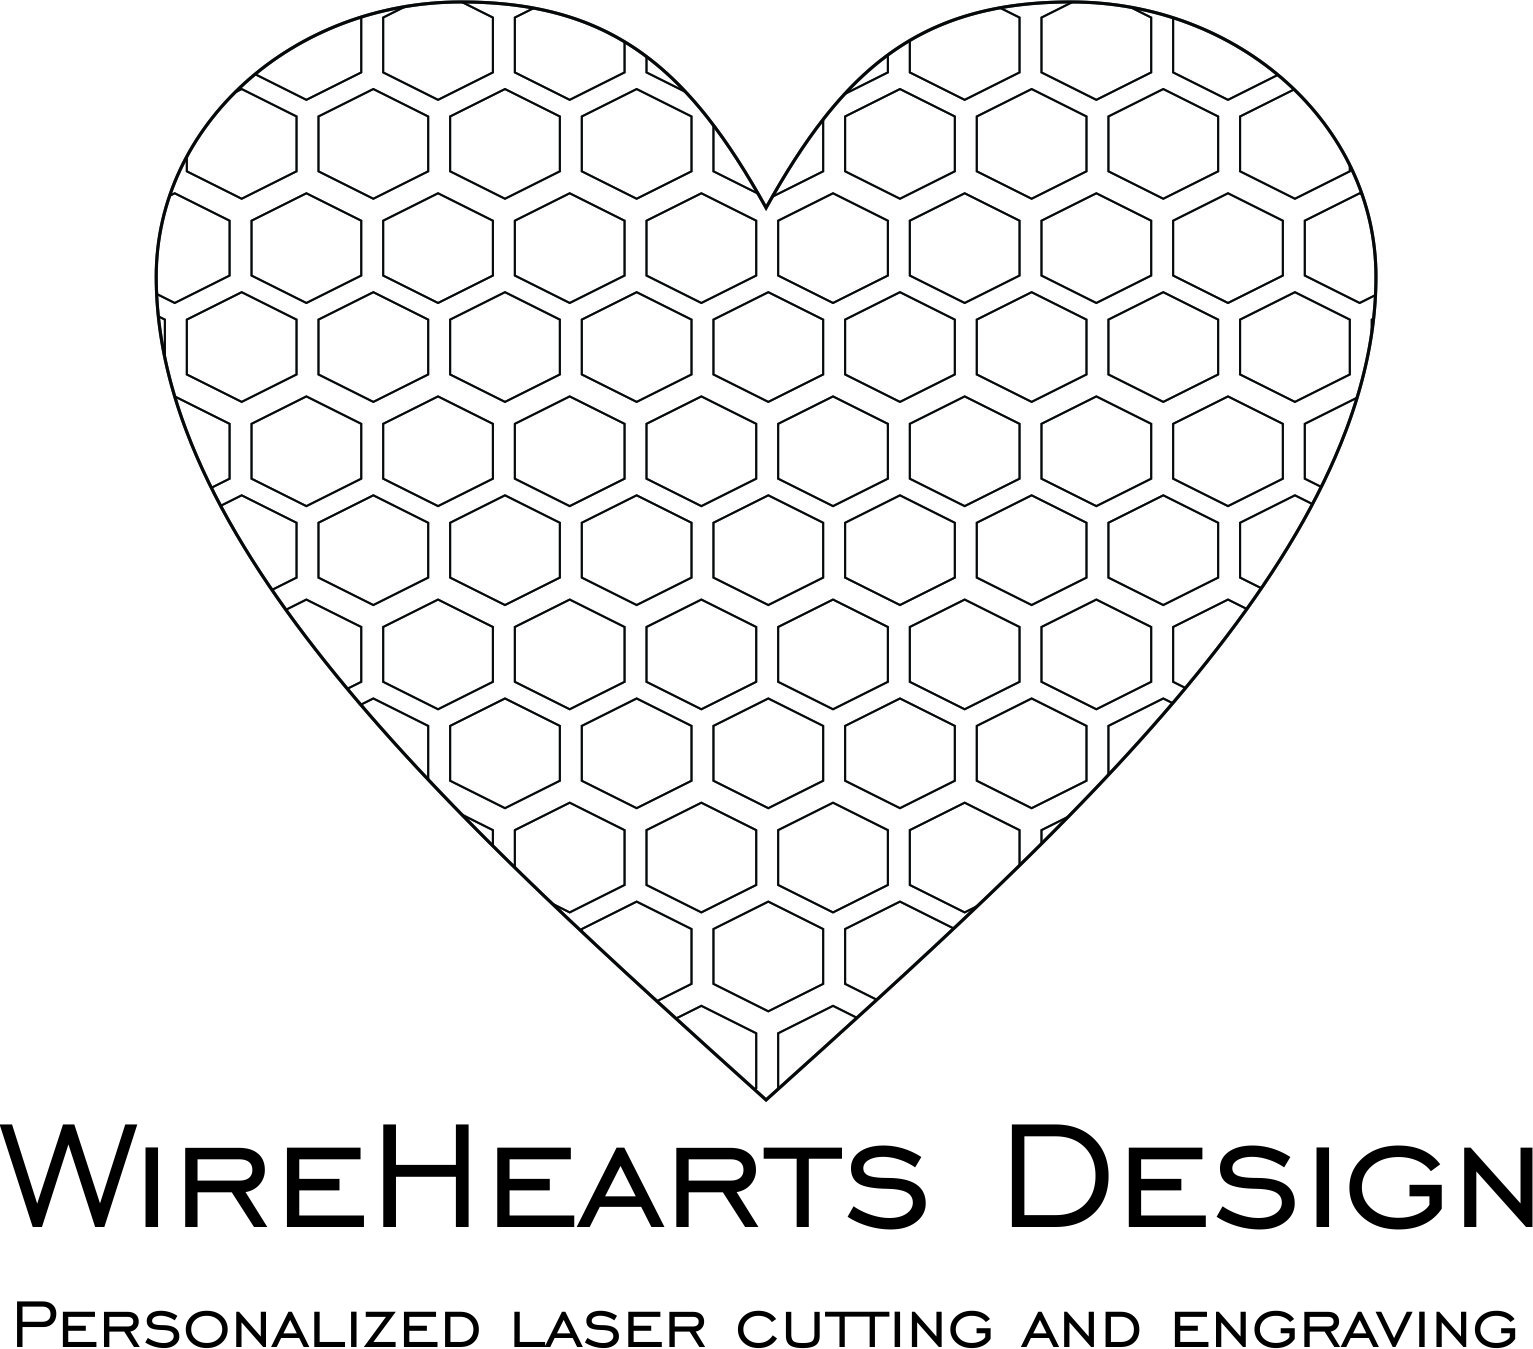 WireHearts Design Personalized laser engraving